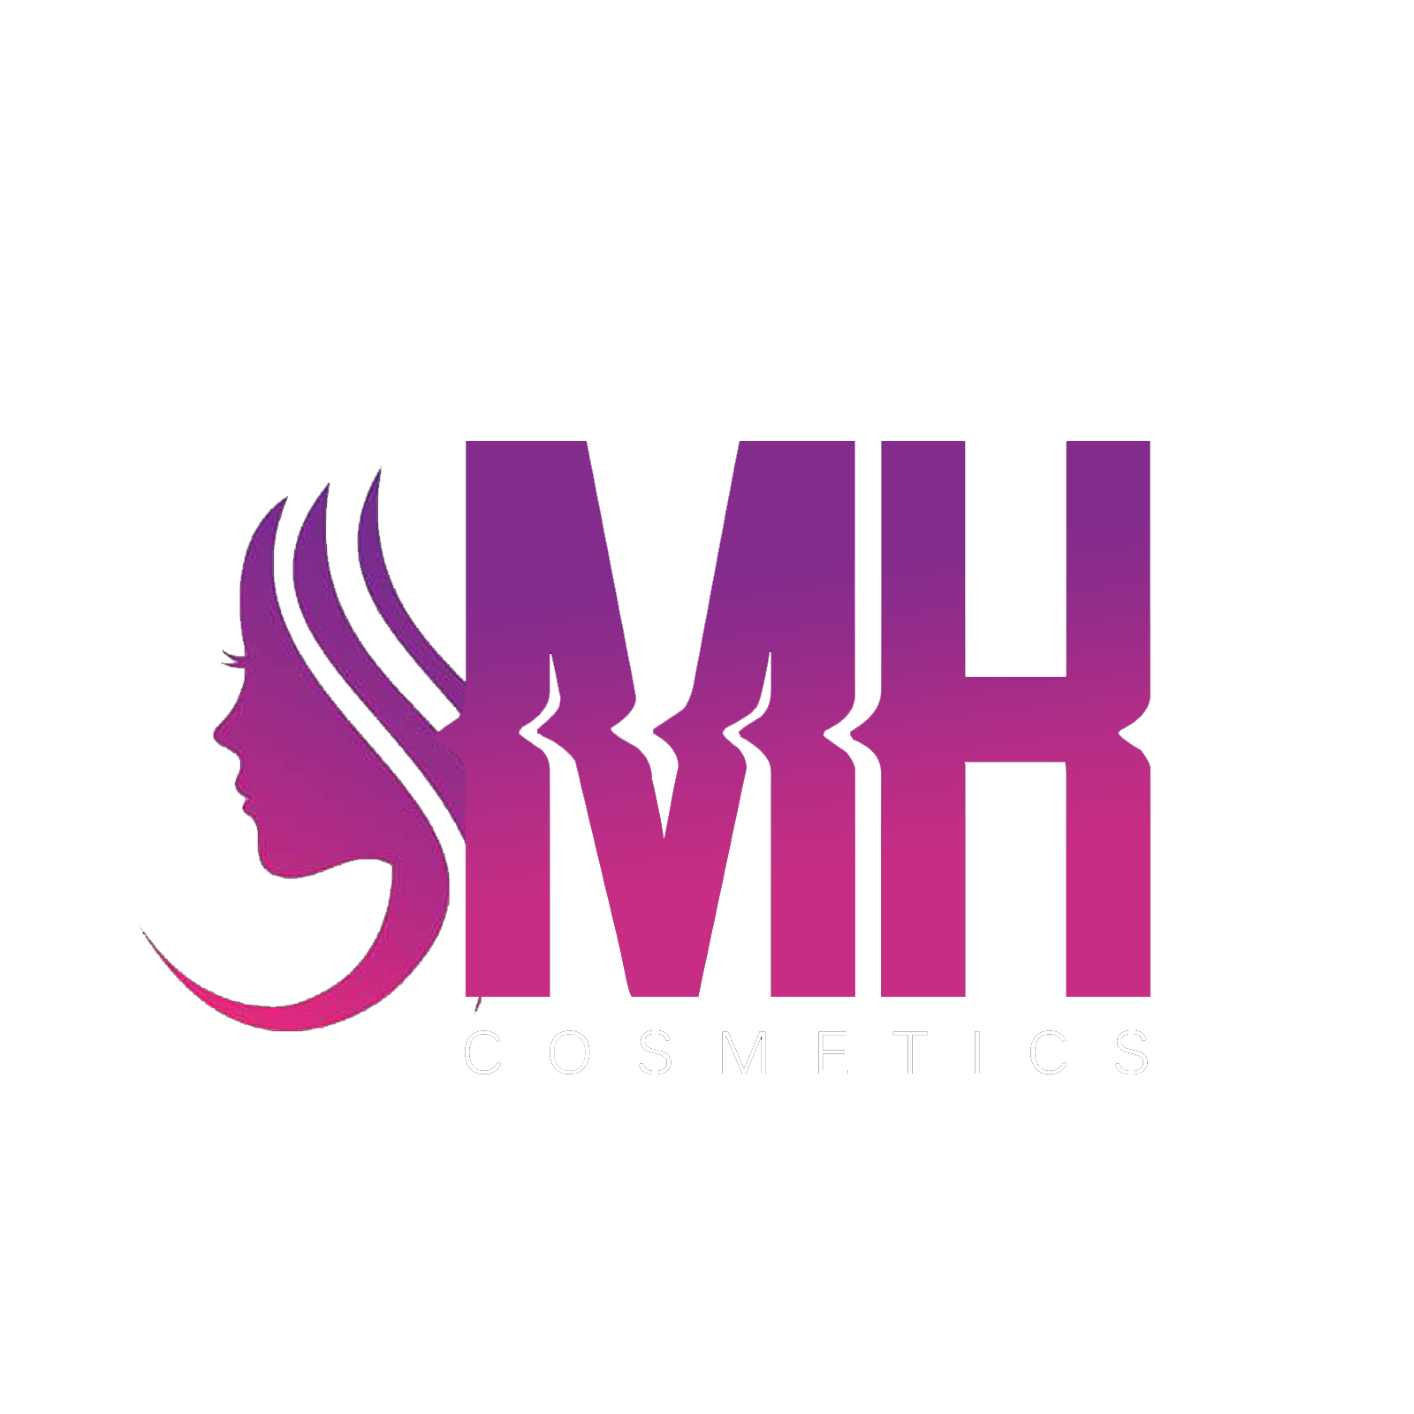 Read Miah Cosmetics Reviews